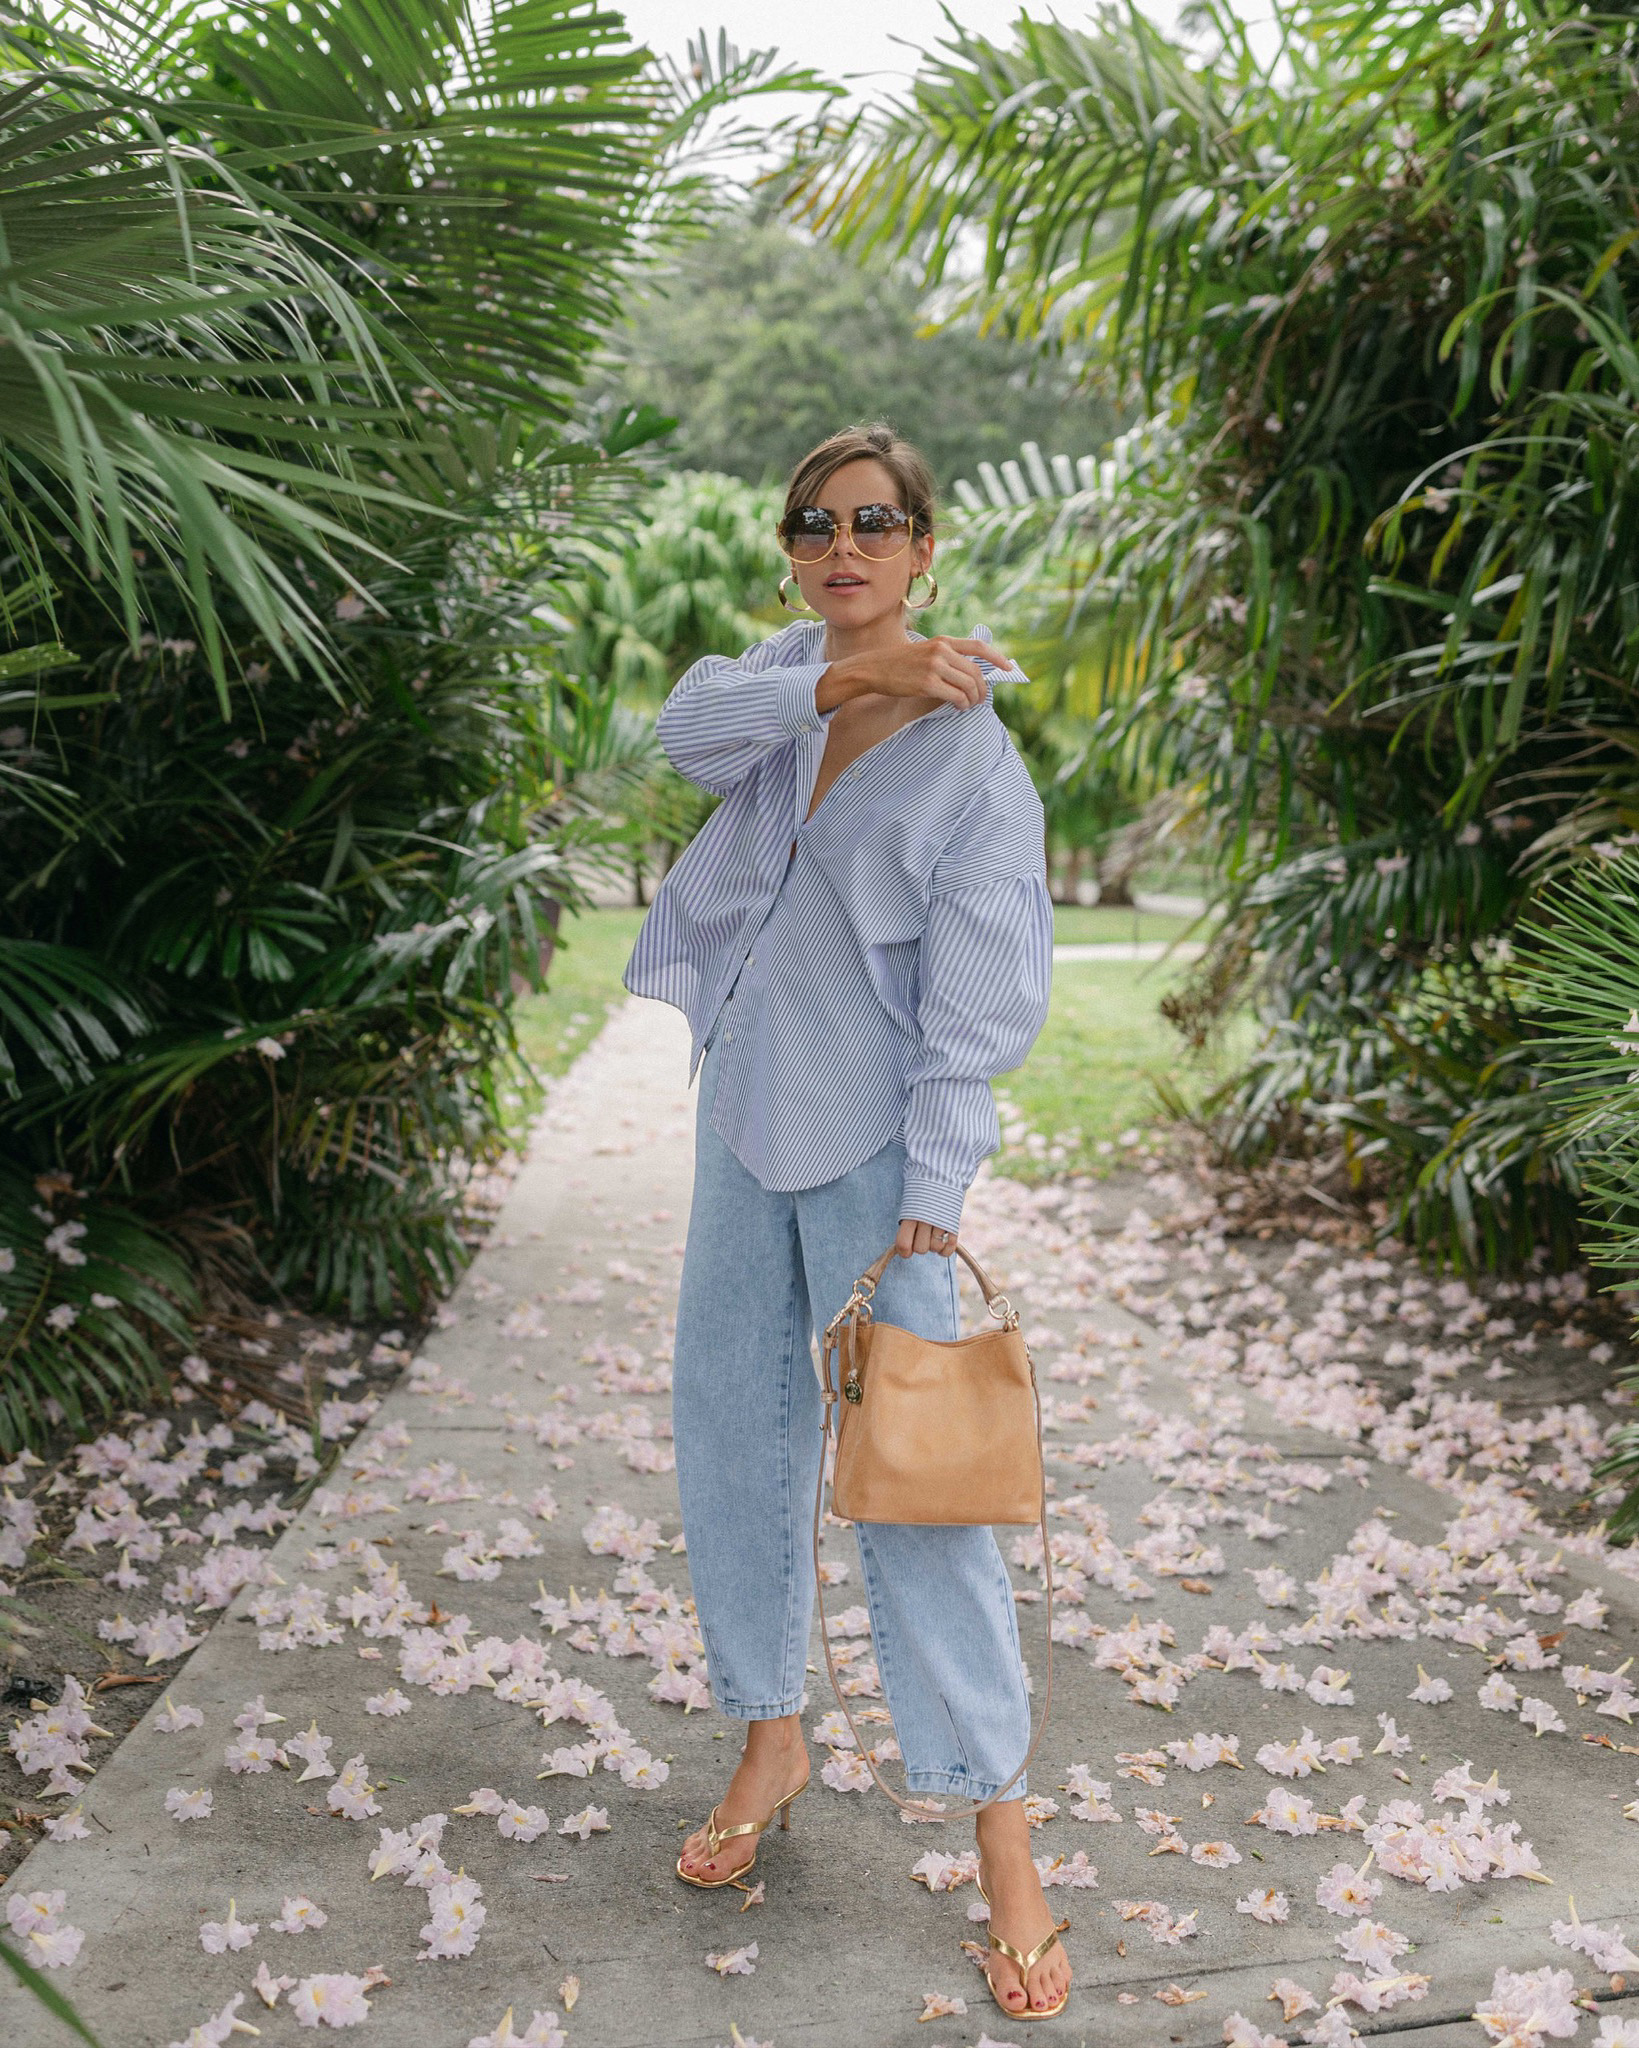 Stephanie Hill wears #ootd featuring Sezane blouse on The Style Bungalow